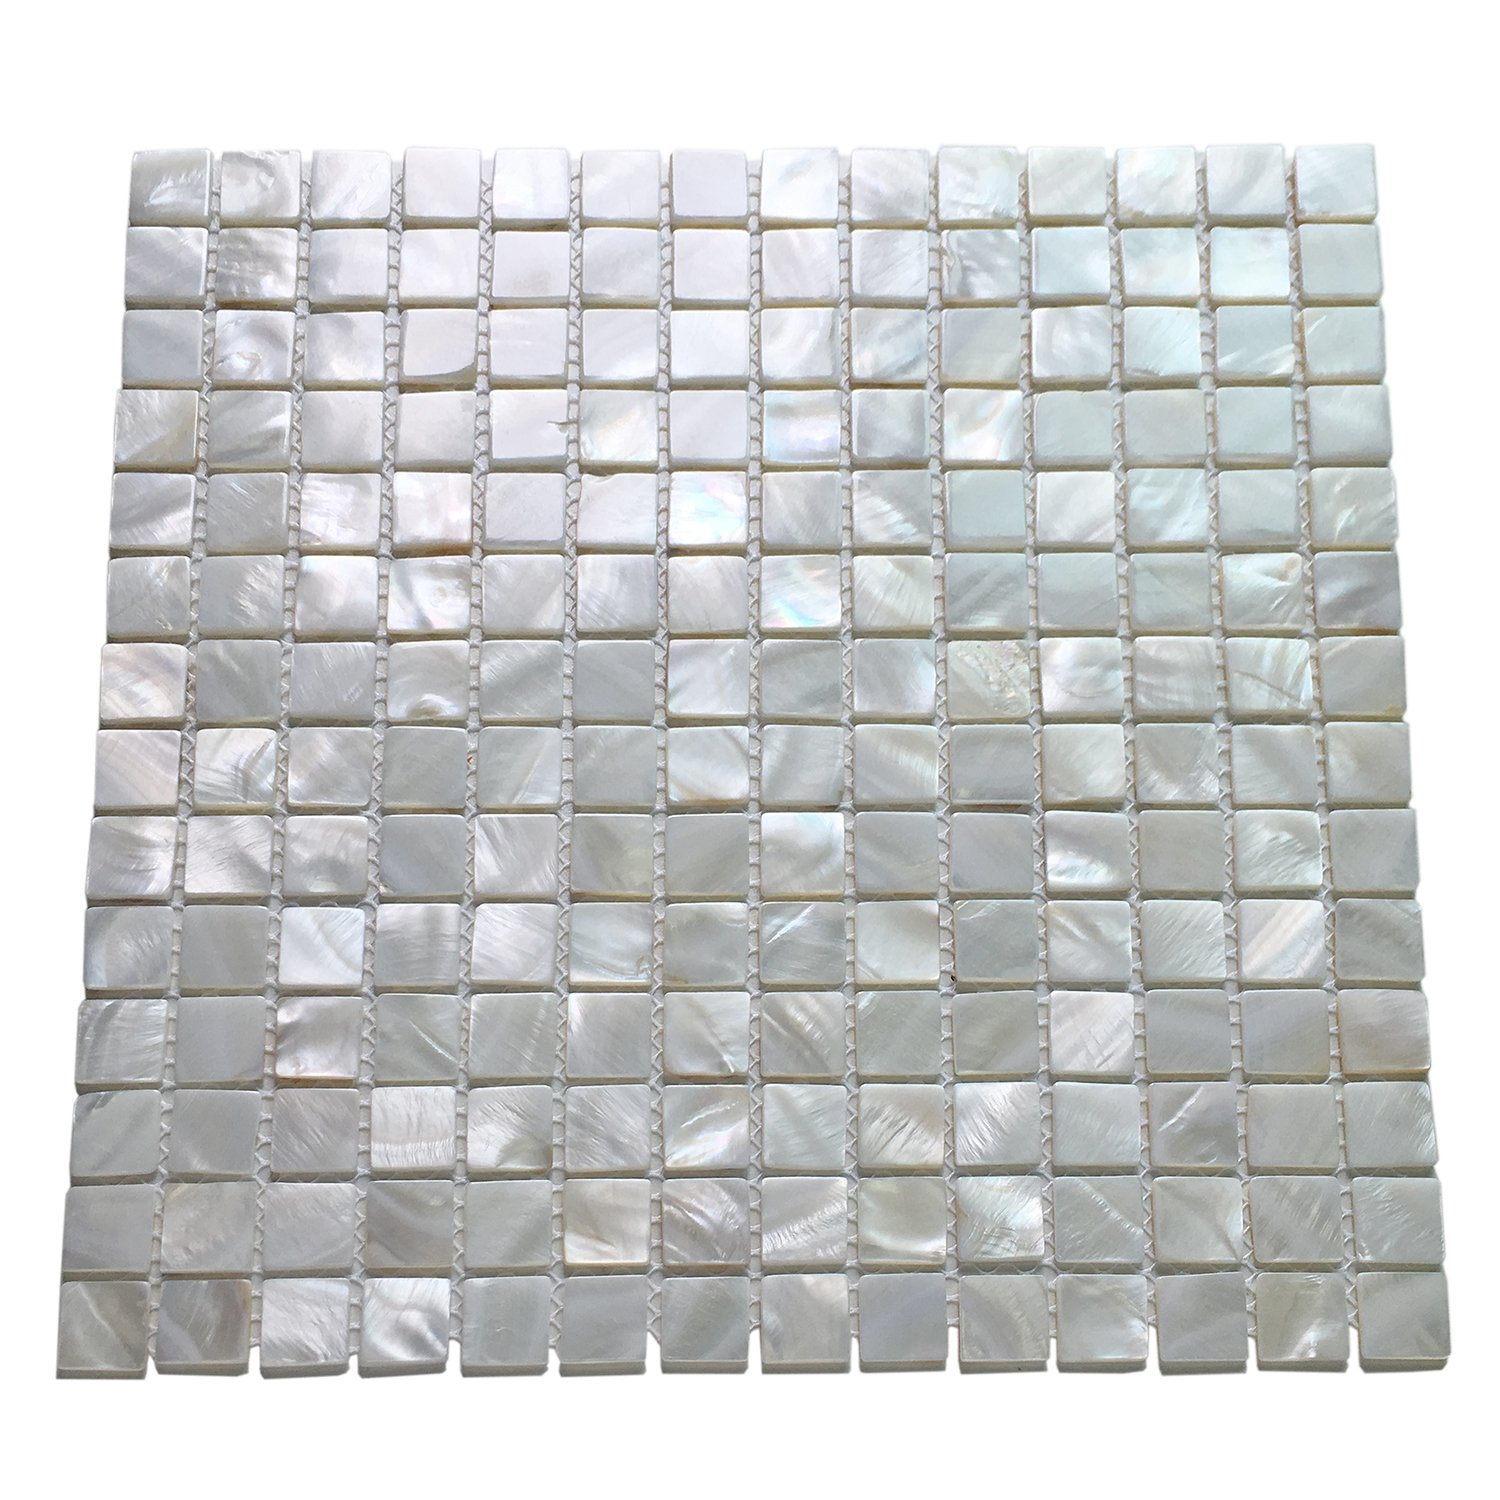 Art3d 10-Pack Oyster Mother of Pearl Square Shell Mosaic for Kitchen Backsplashes, Bathroom Walls, Spa Tile, Pool Tile by Art3d